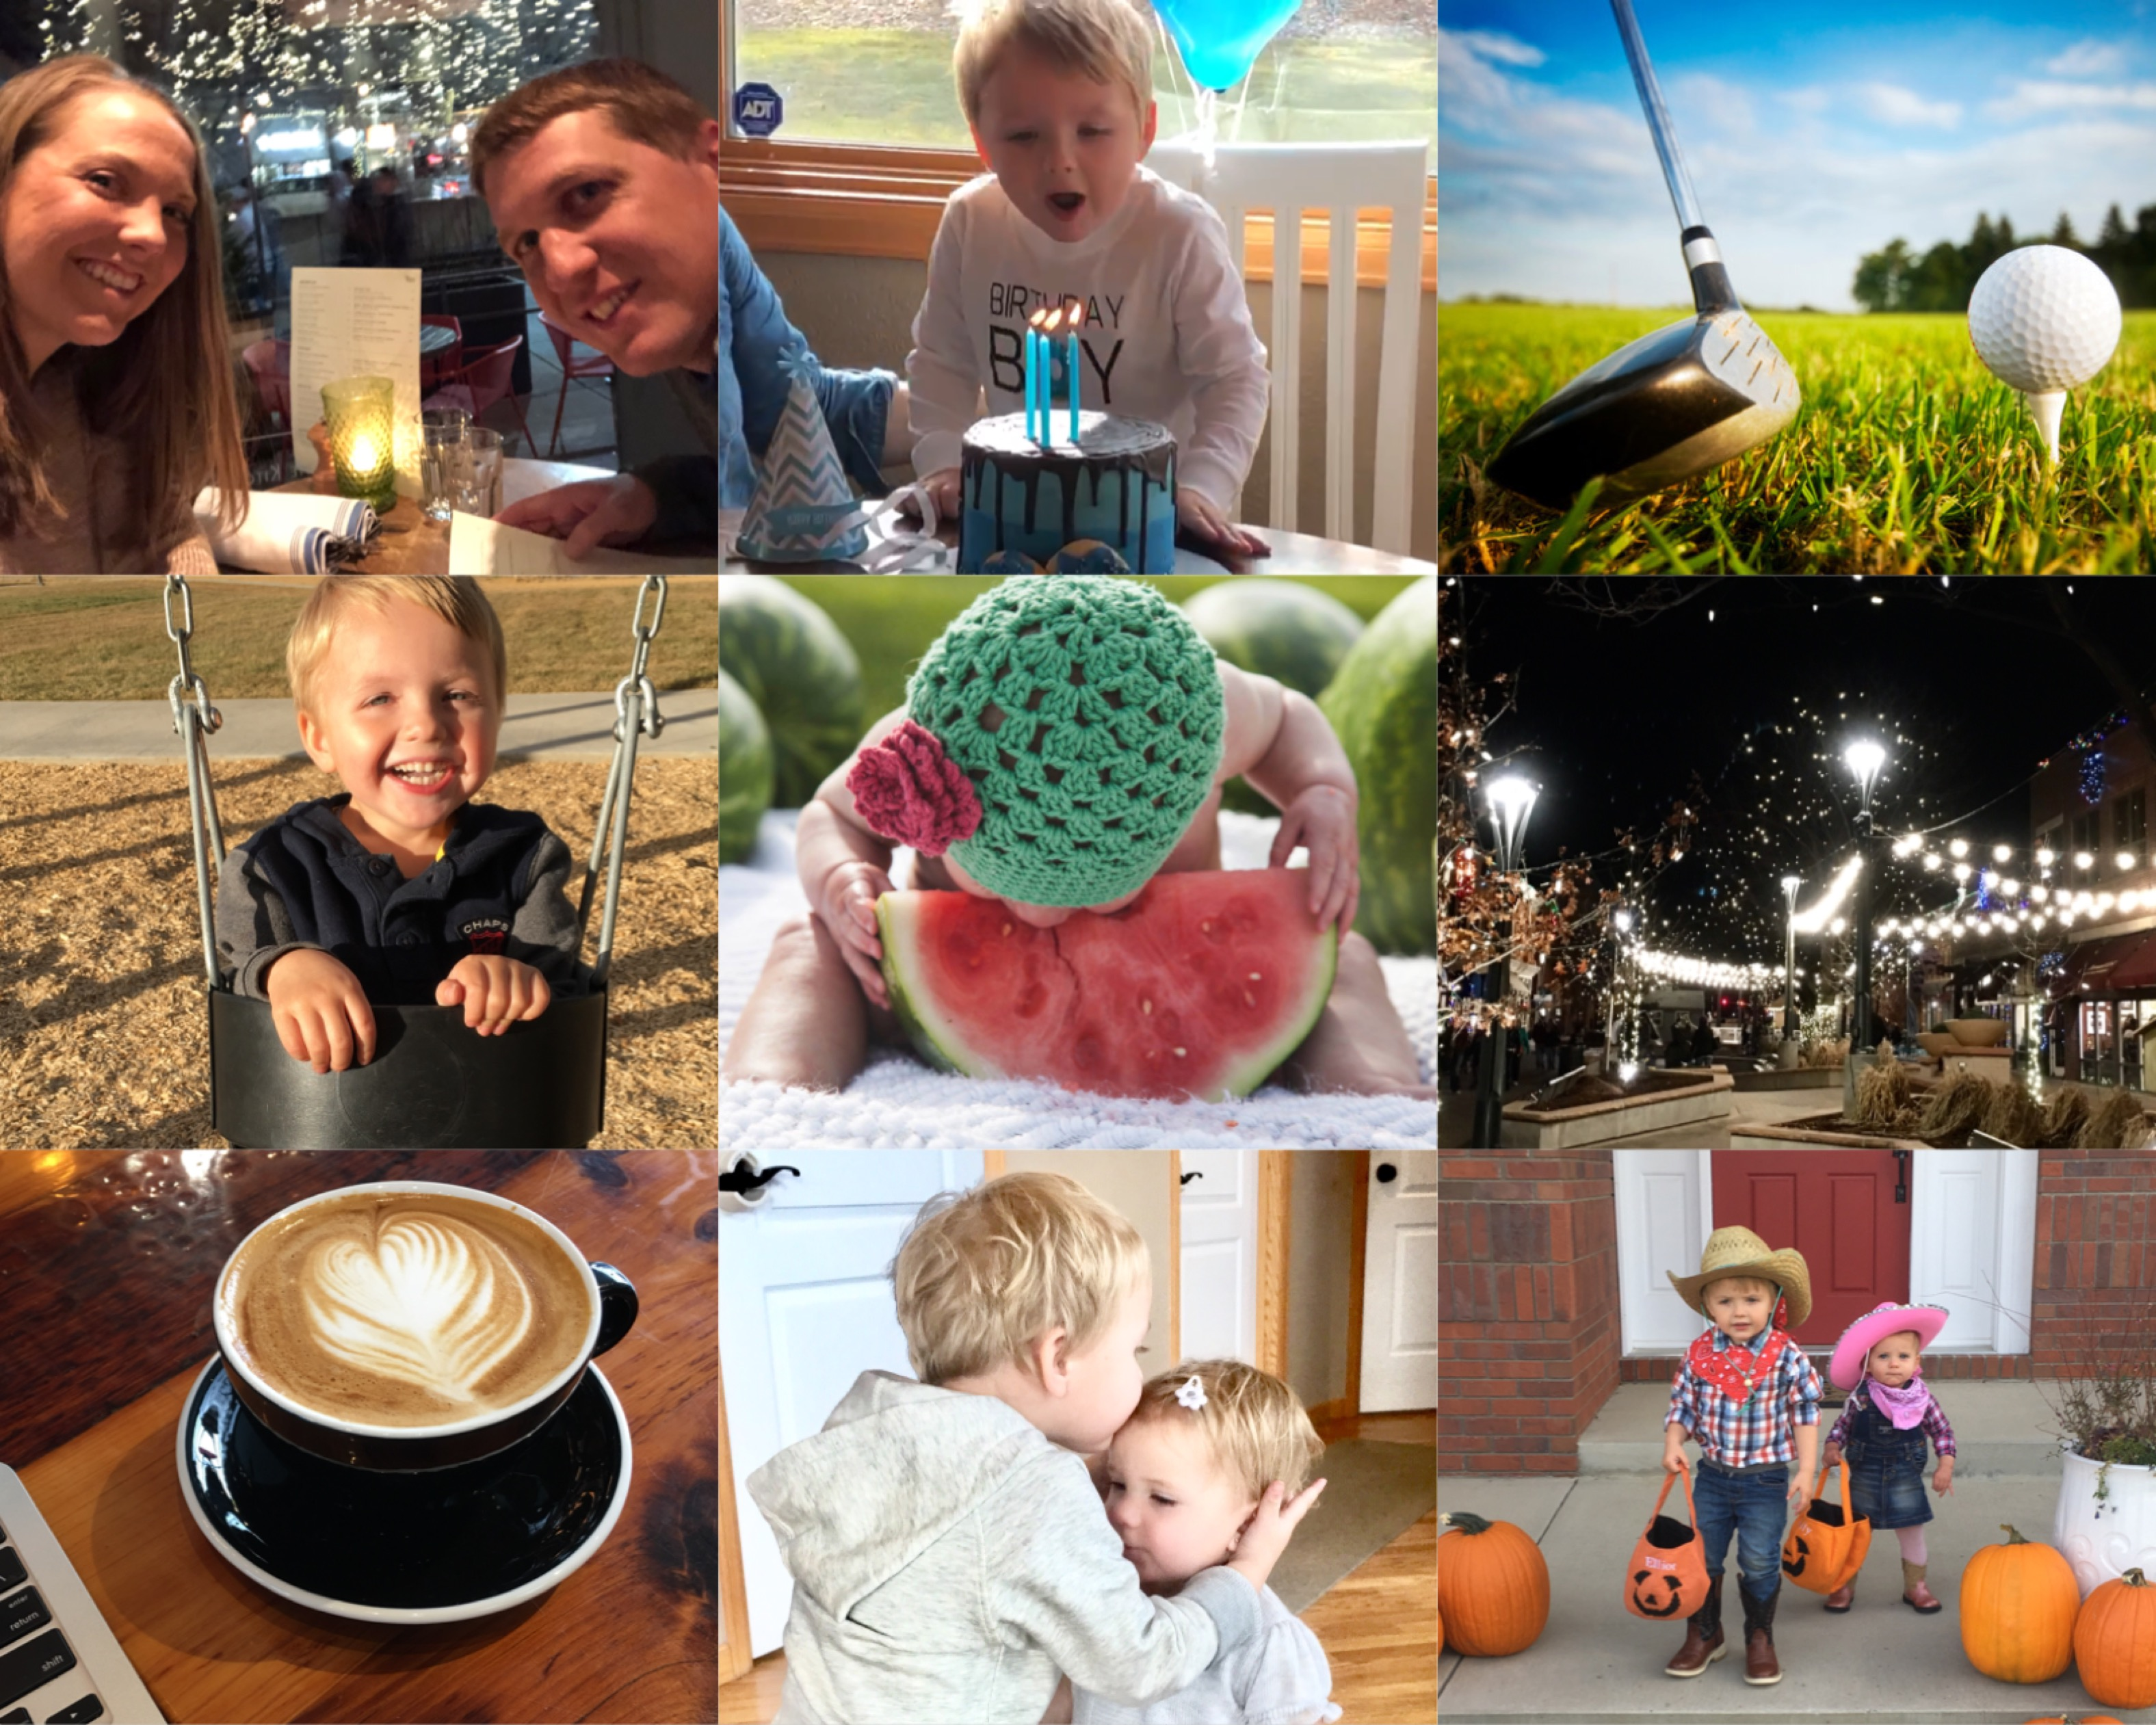 My Fort Collins Giveaway   Parks, family, children, playing in the snow, Fort Collins, home   Real Estate & Lifestyle in Northern Colorado, a blog by Joanna Gyrath, Realtor